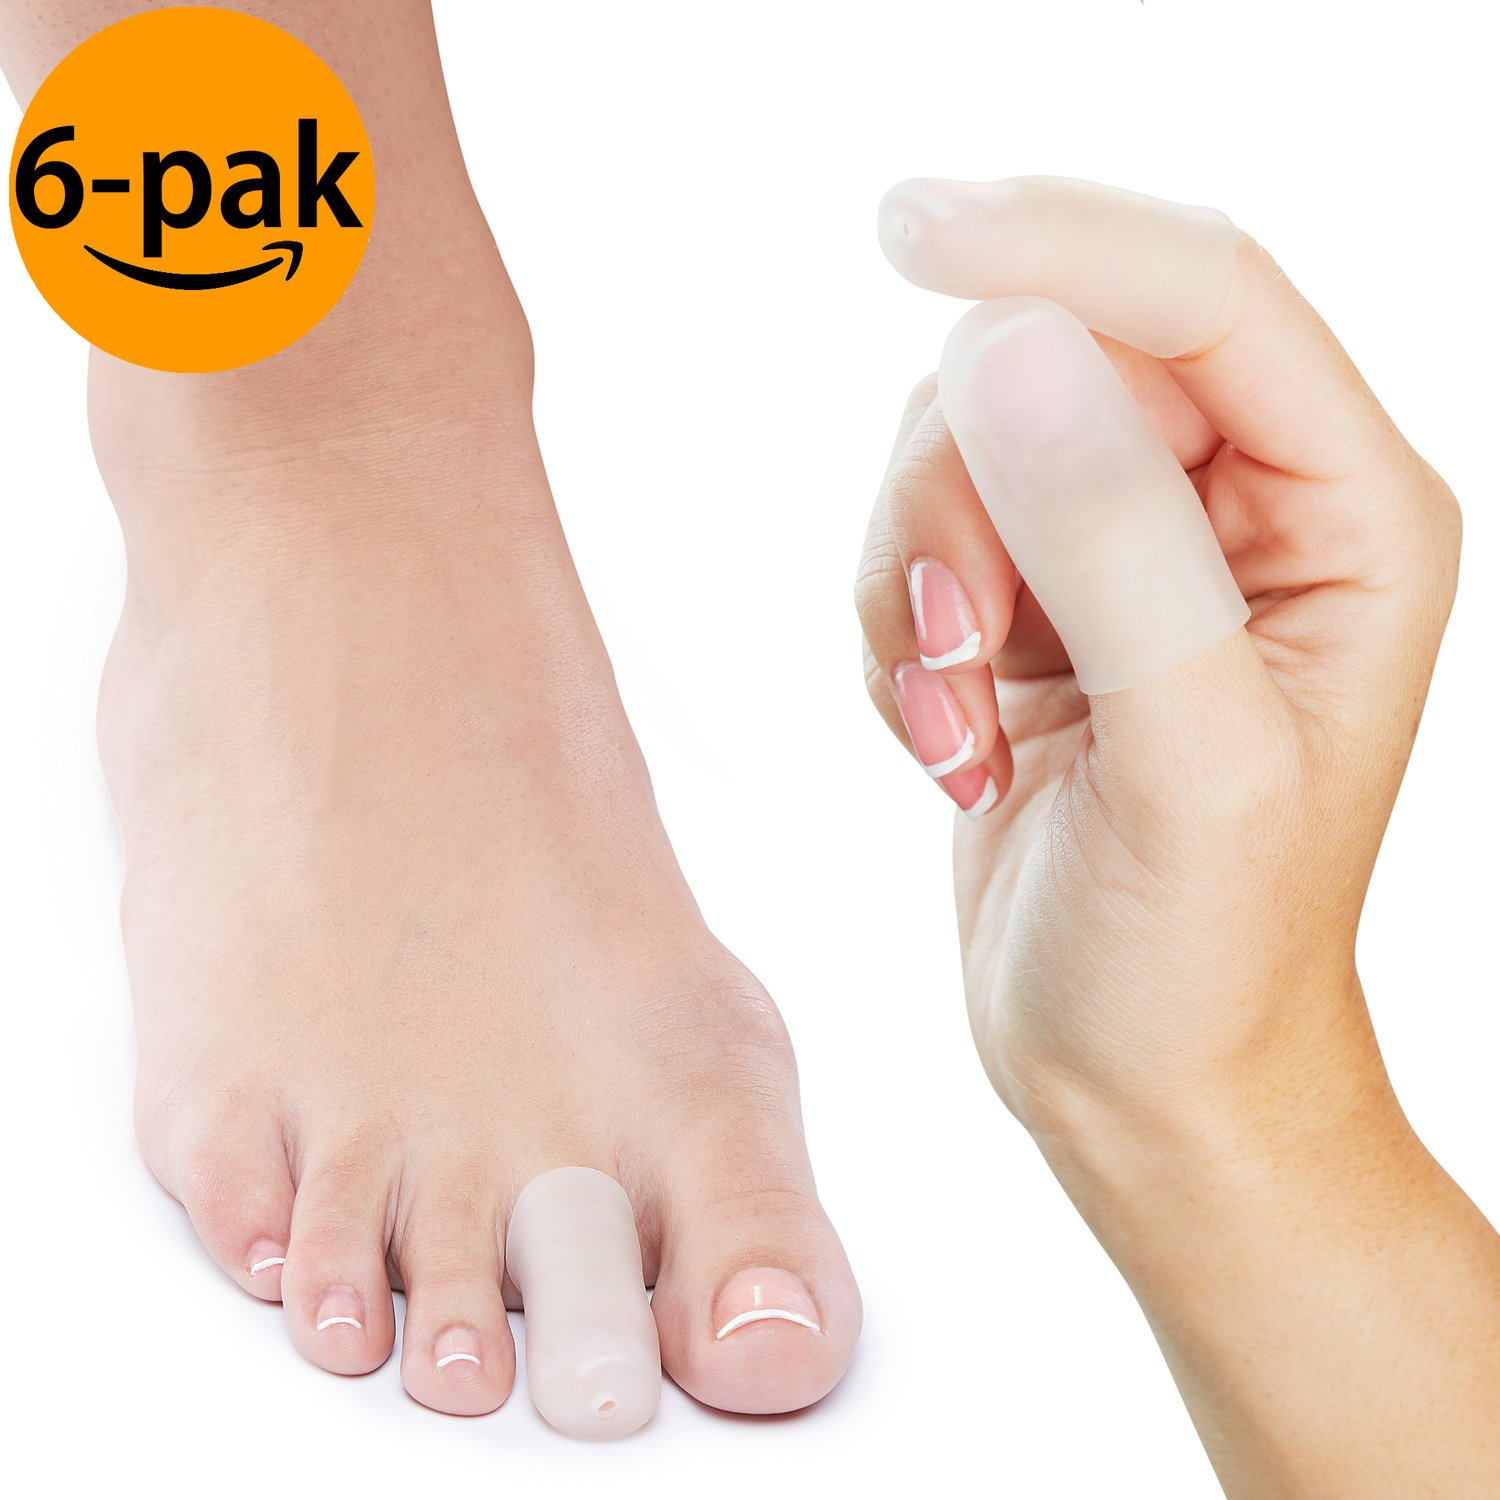 NatraCure Gel Toe/Finger Cap and Protector - 6 PACK - (Size: Small/Medium) - Helps Cushion and Reduce Pain from Corns, Blisters, Hammer Toes, and Ingrown Nails